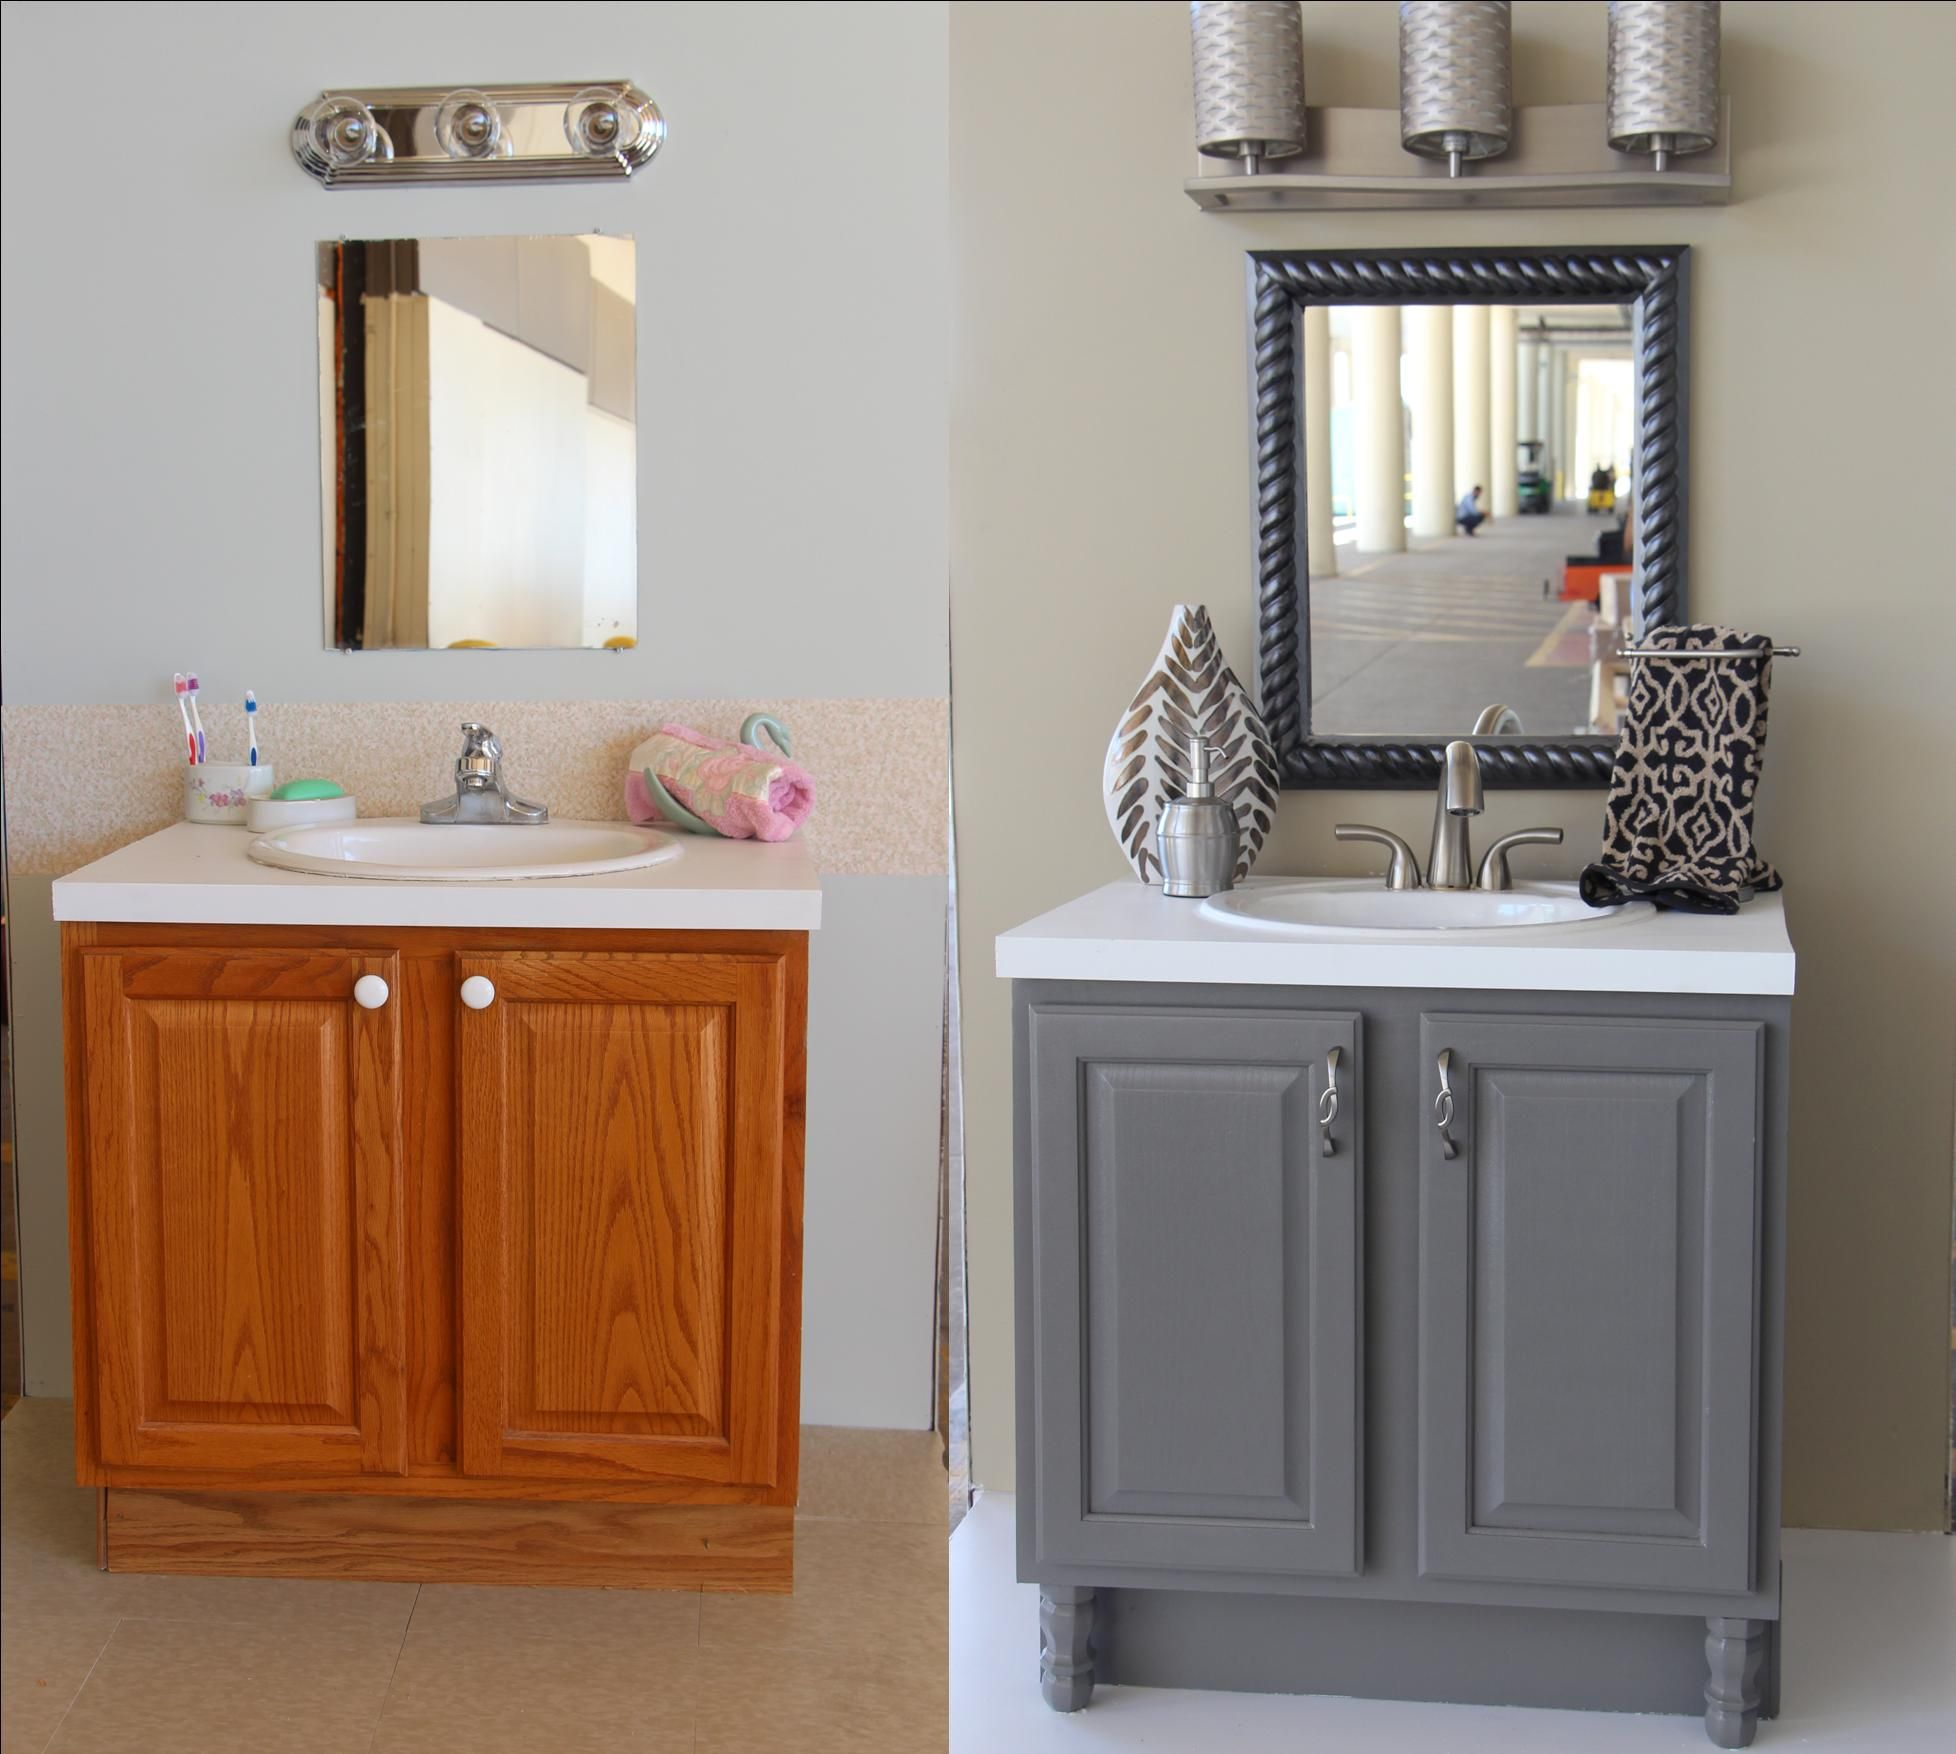 Bathroom Updates You Can Do This Weekend Bathroom Makeover Small Bathroom Remodel Bathrooms Remodel